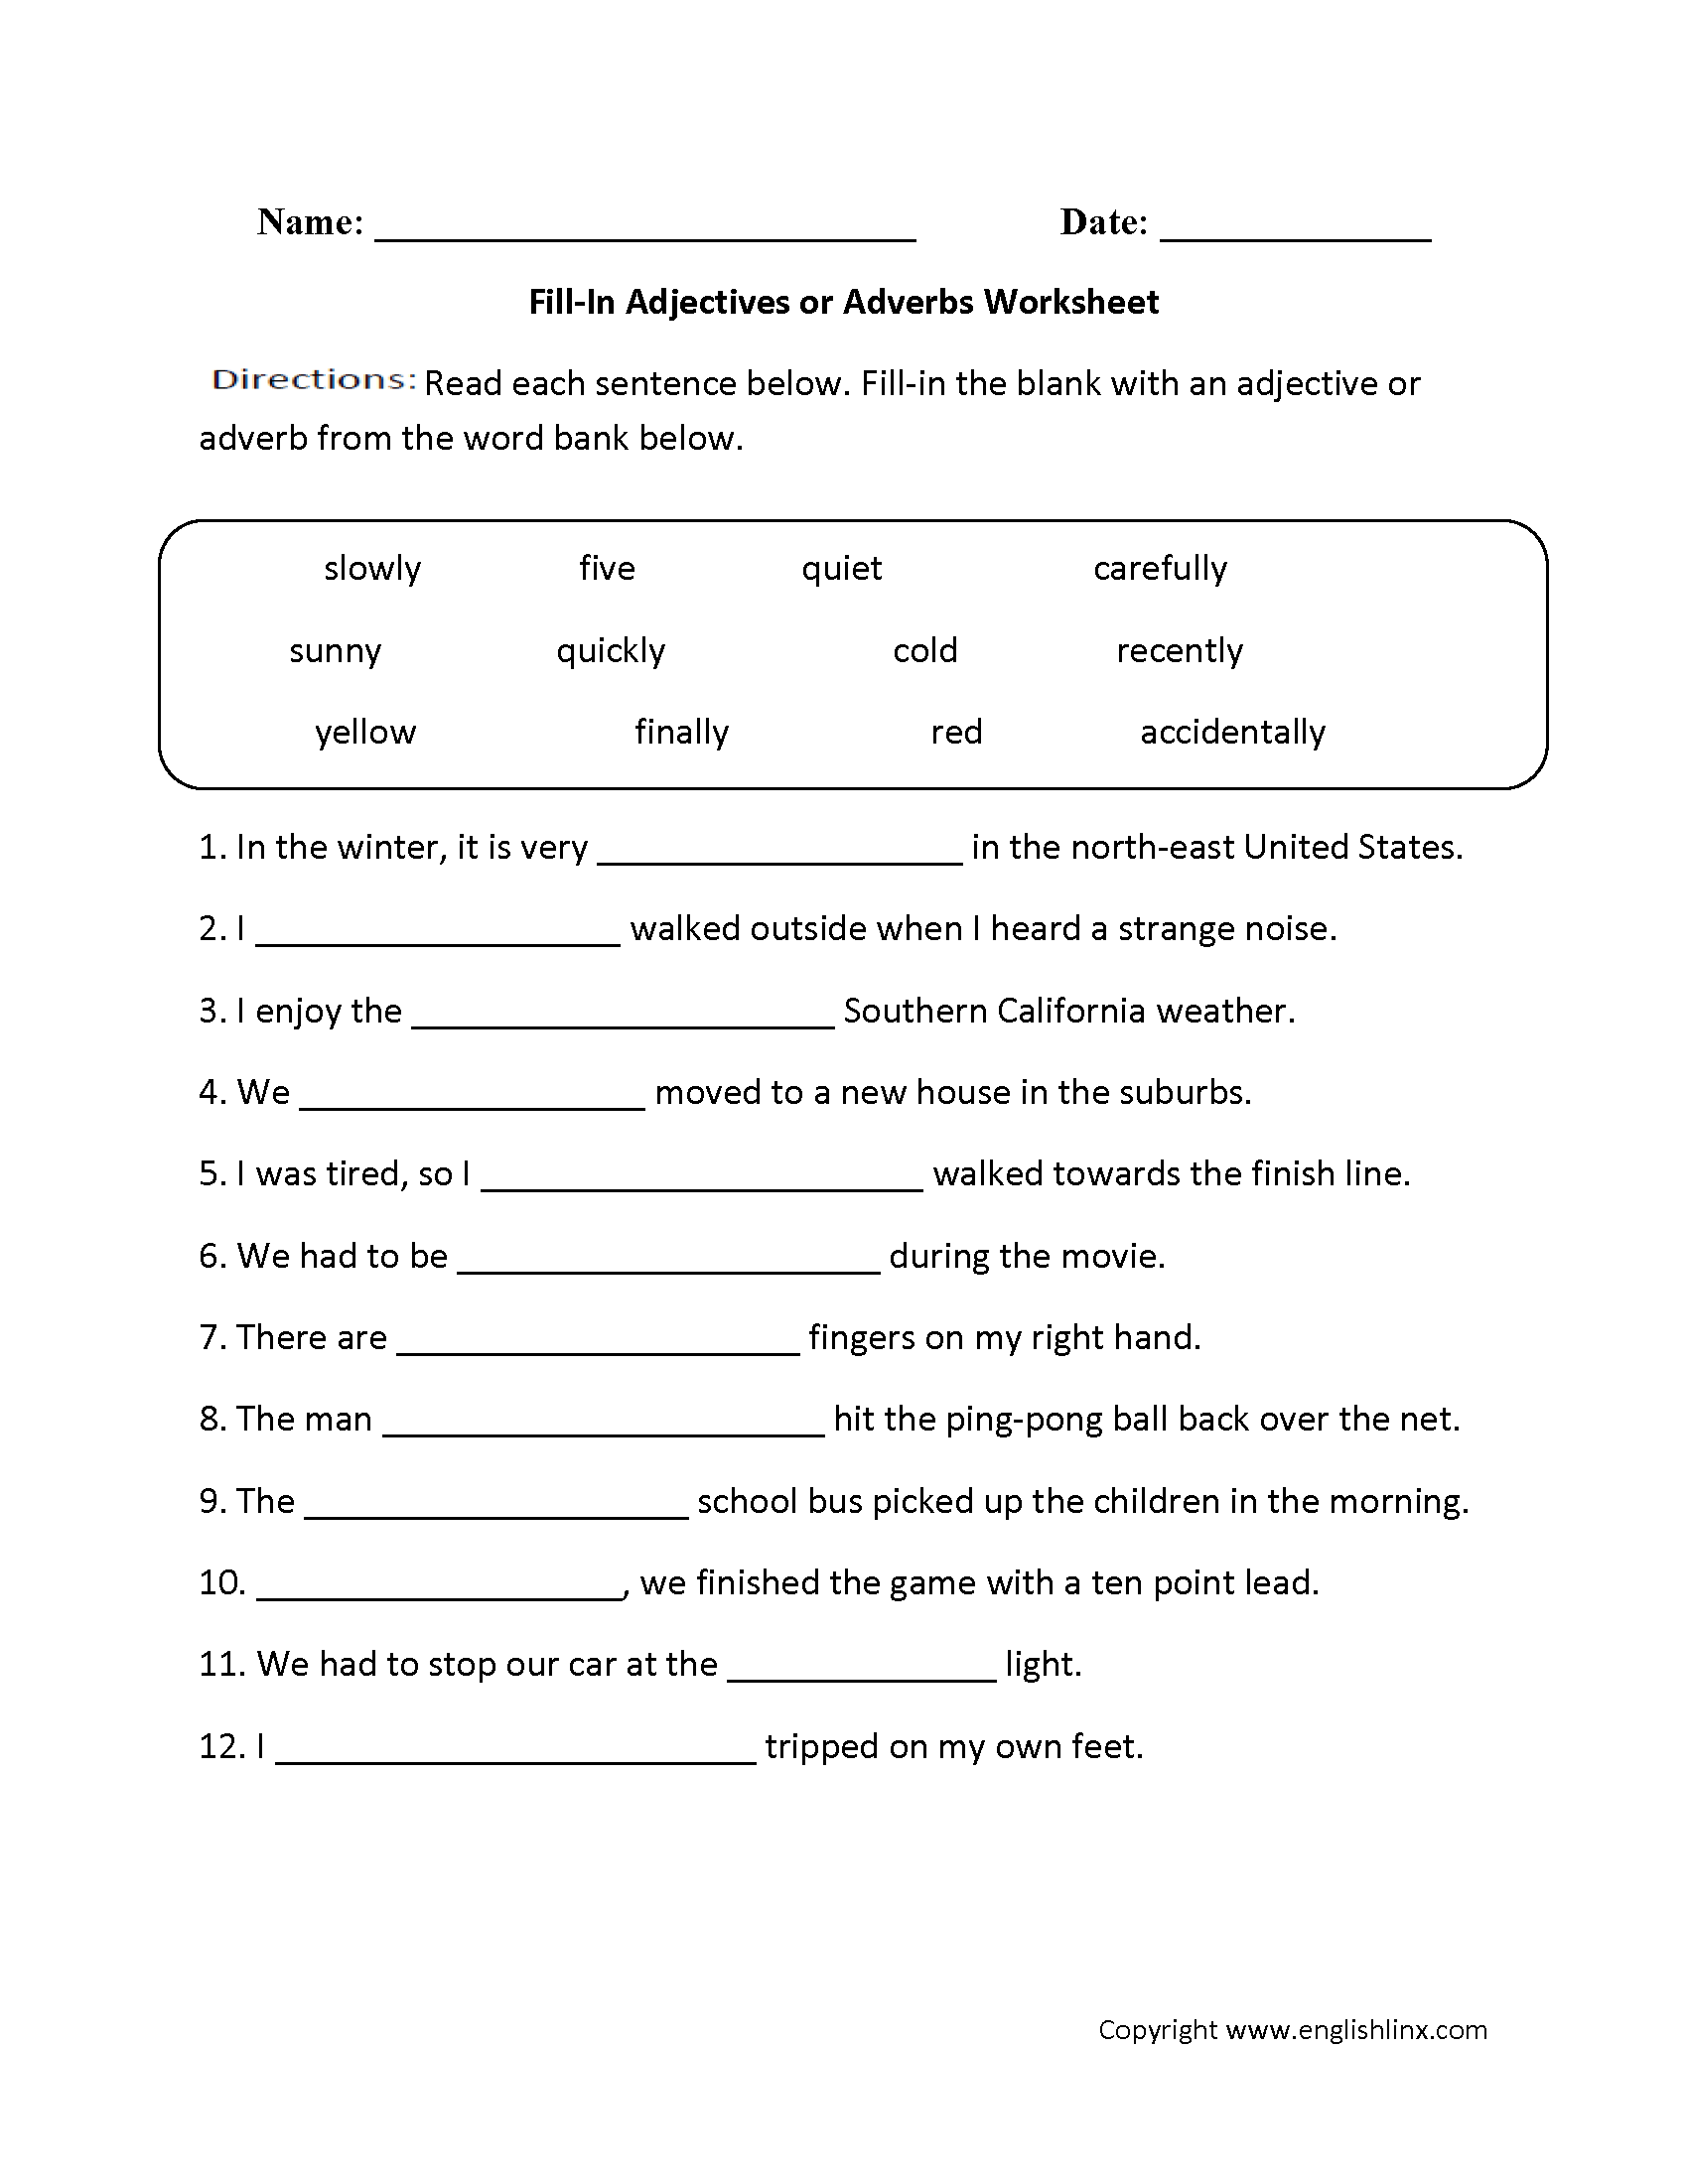 Worksheet Adverbs For Grade 5 adjectives worksheets or adverbs worksheet